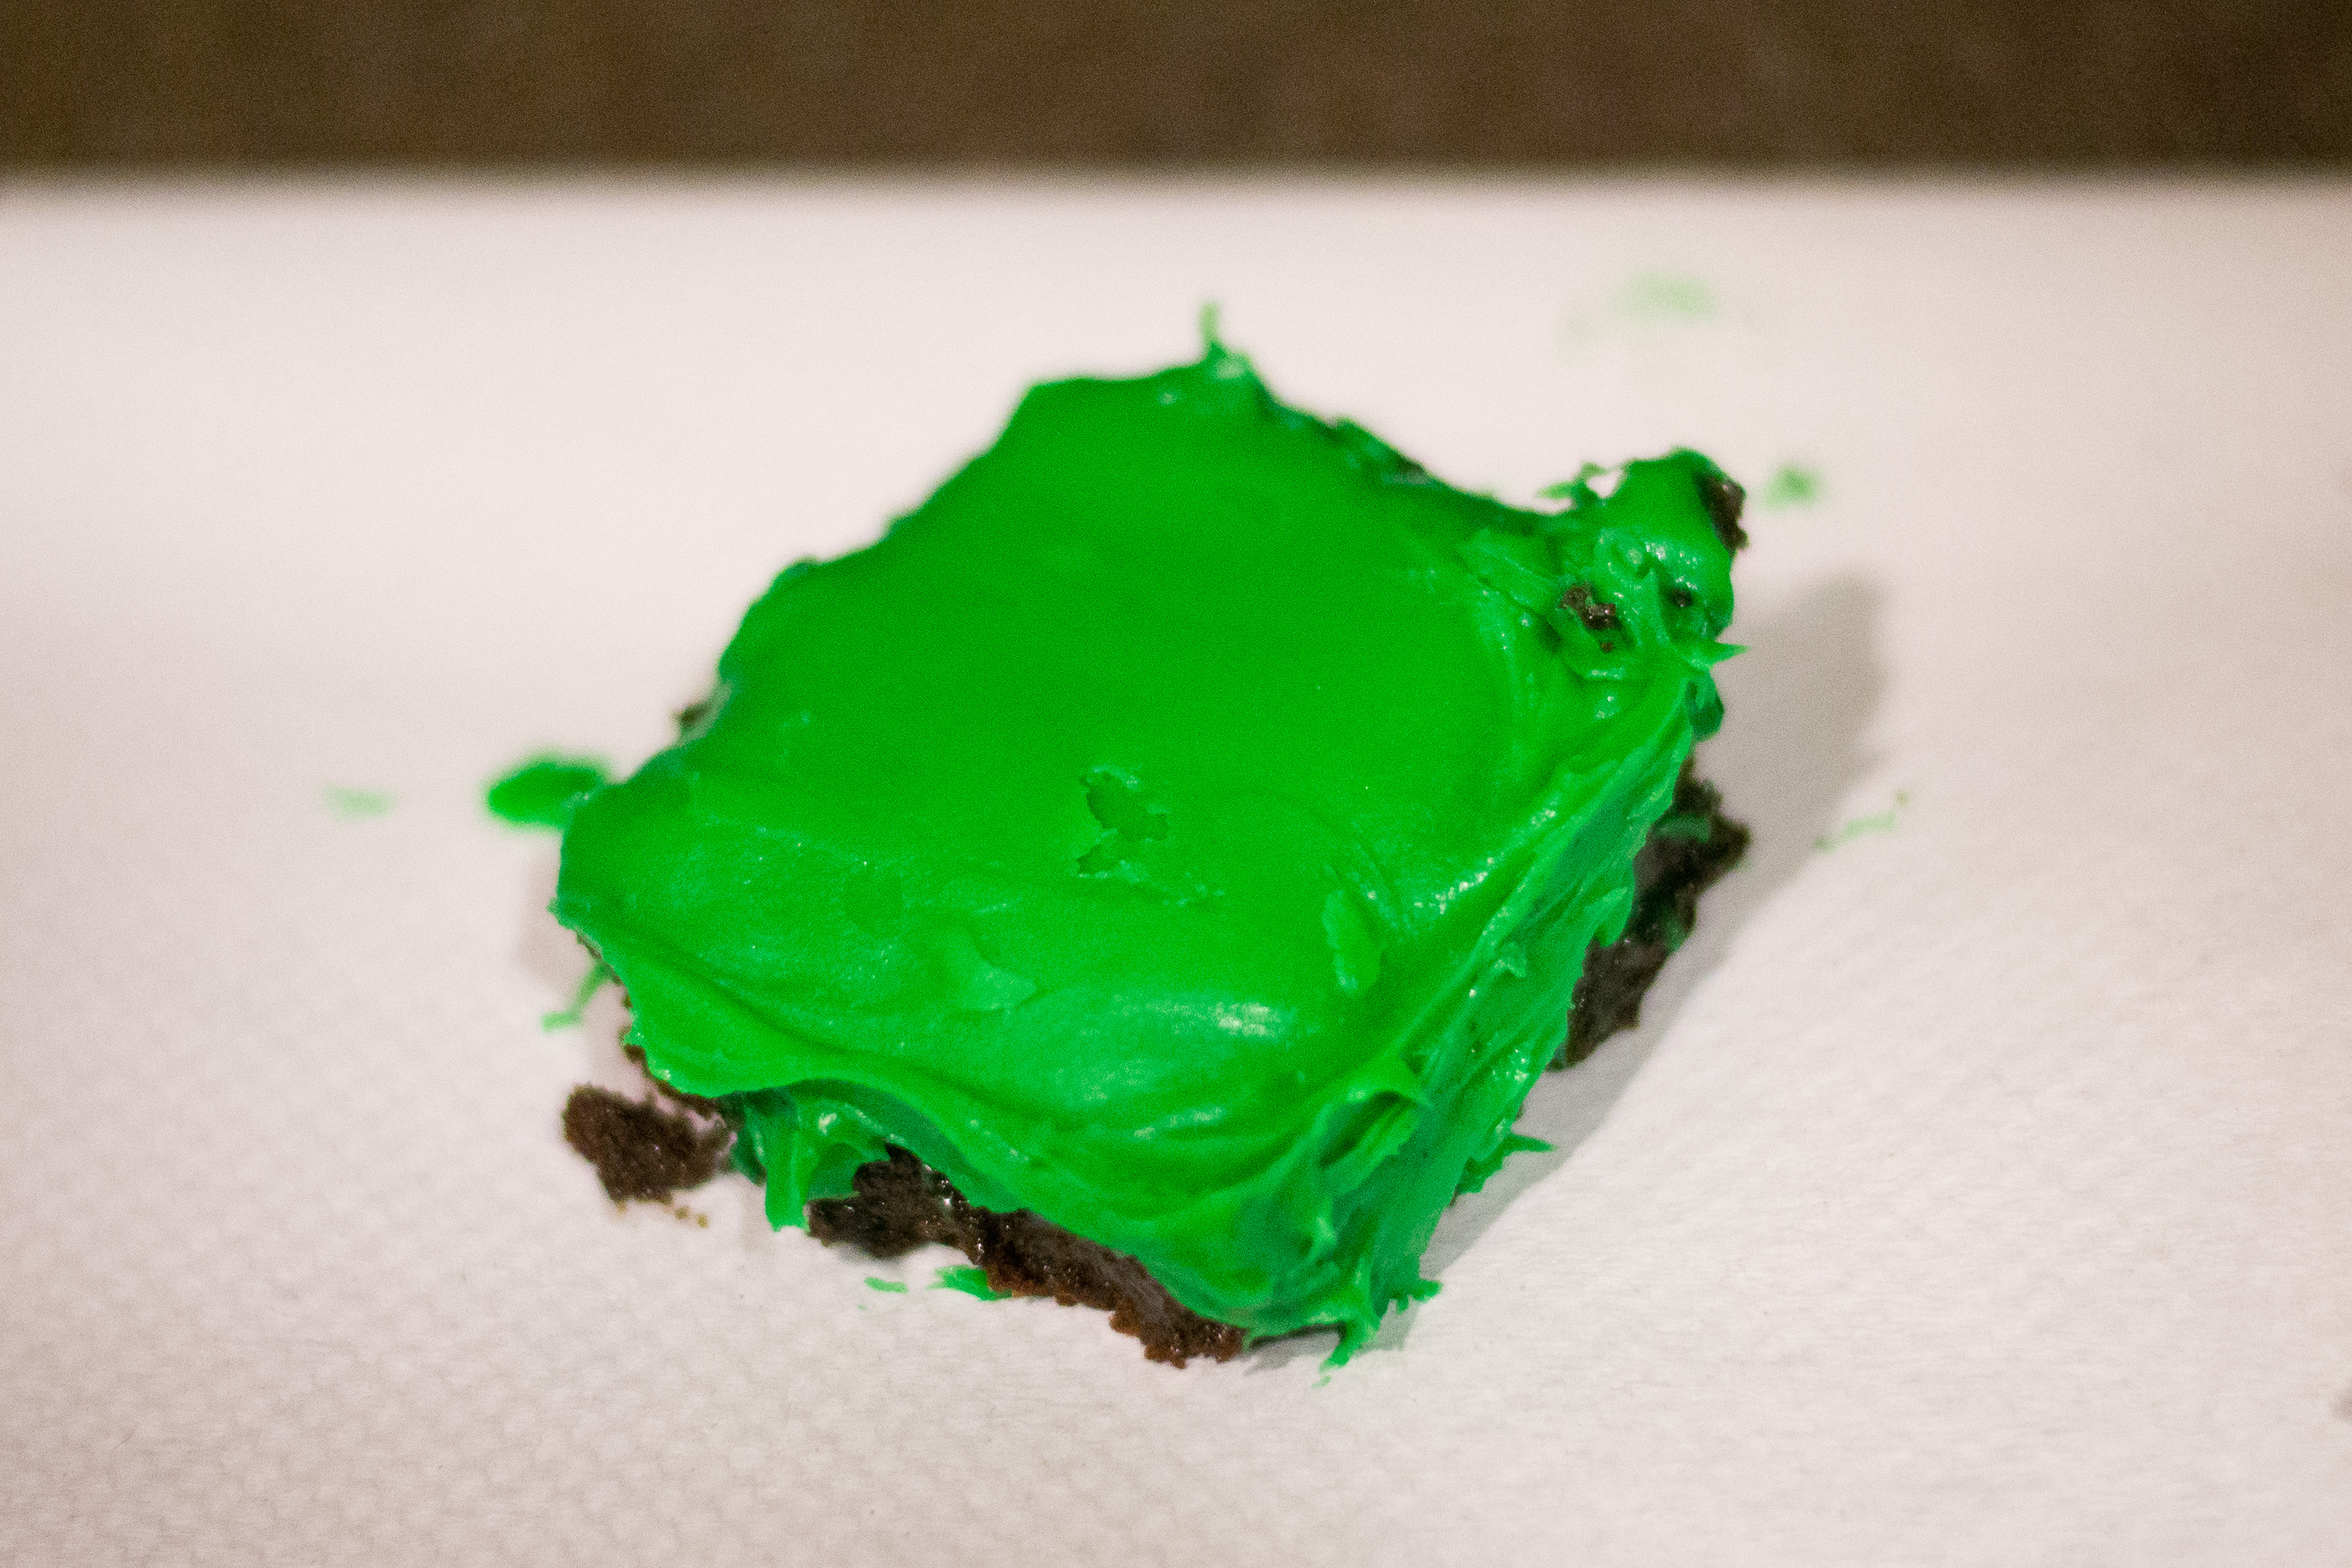 Mint green brownies for St. Patrick's Day